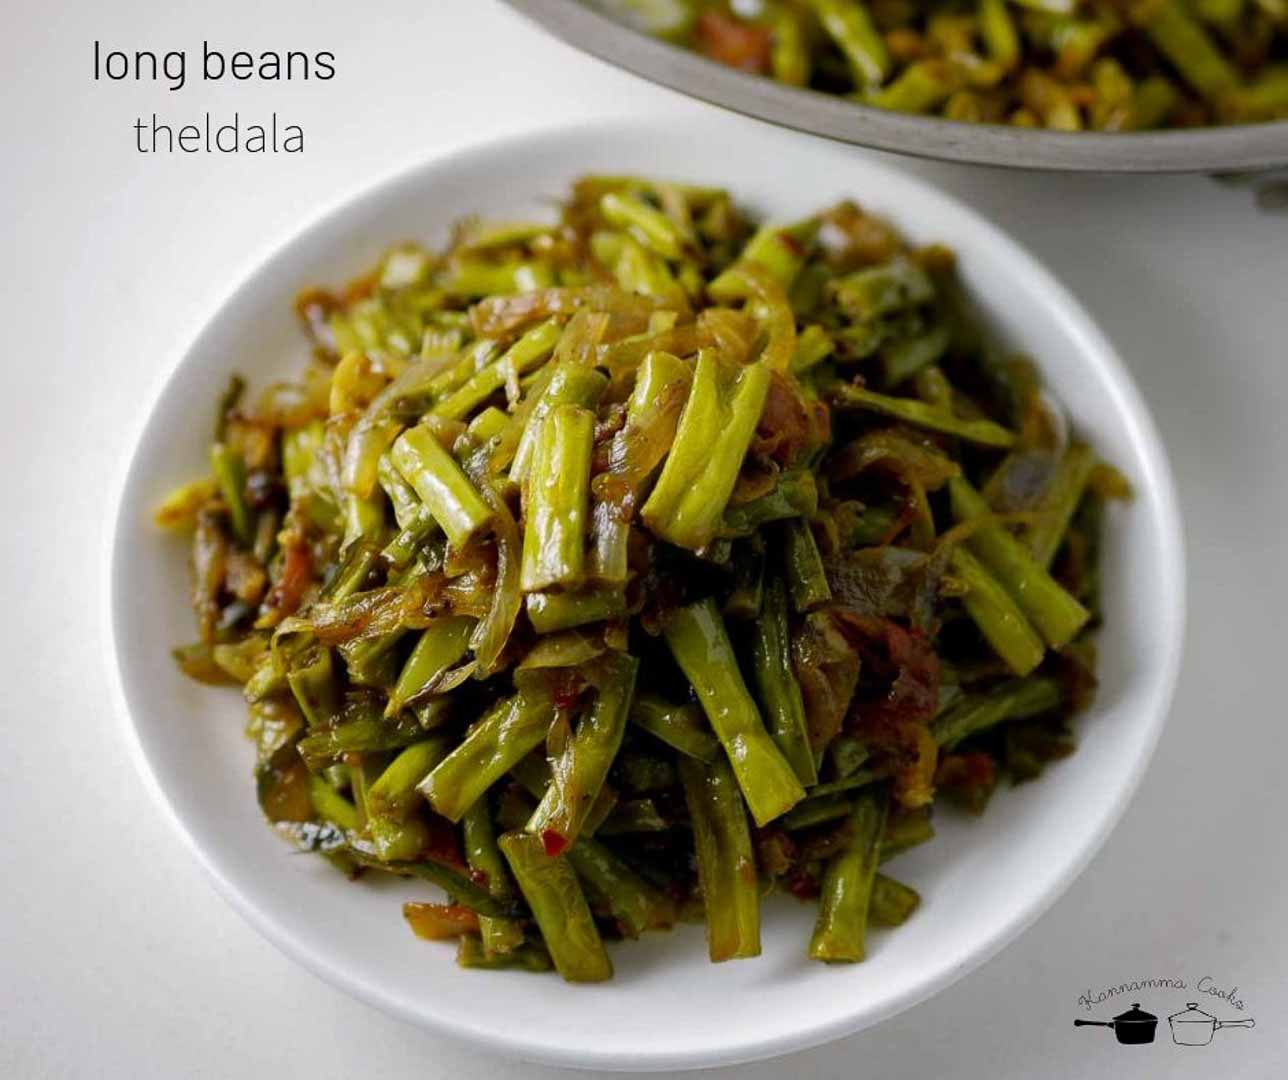 long-beans-thel-dala-recipe-7